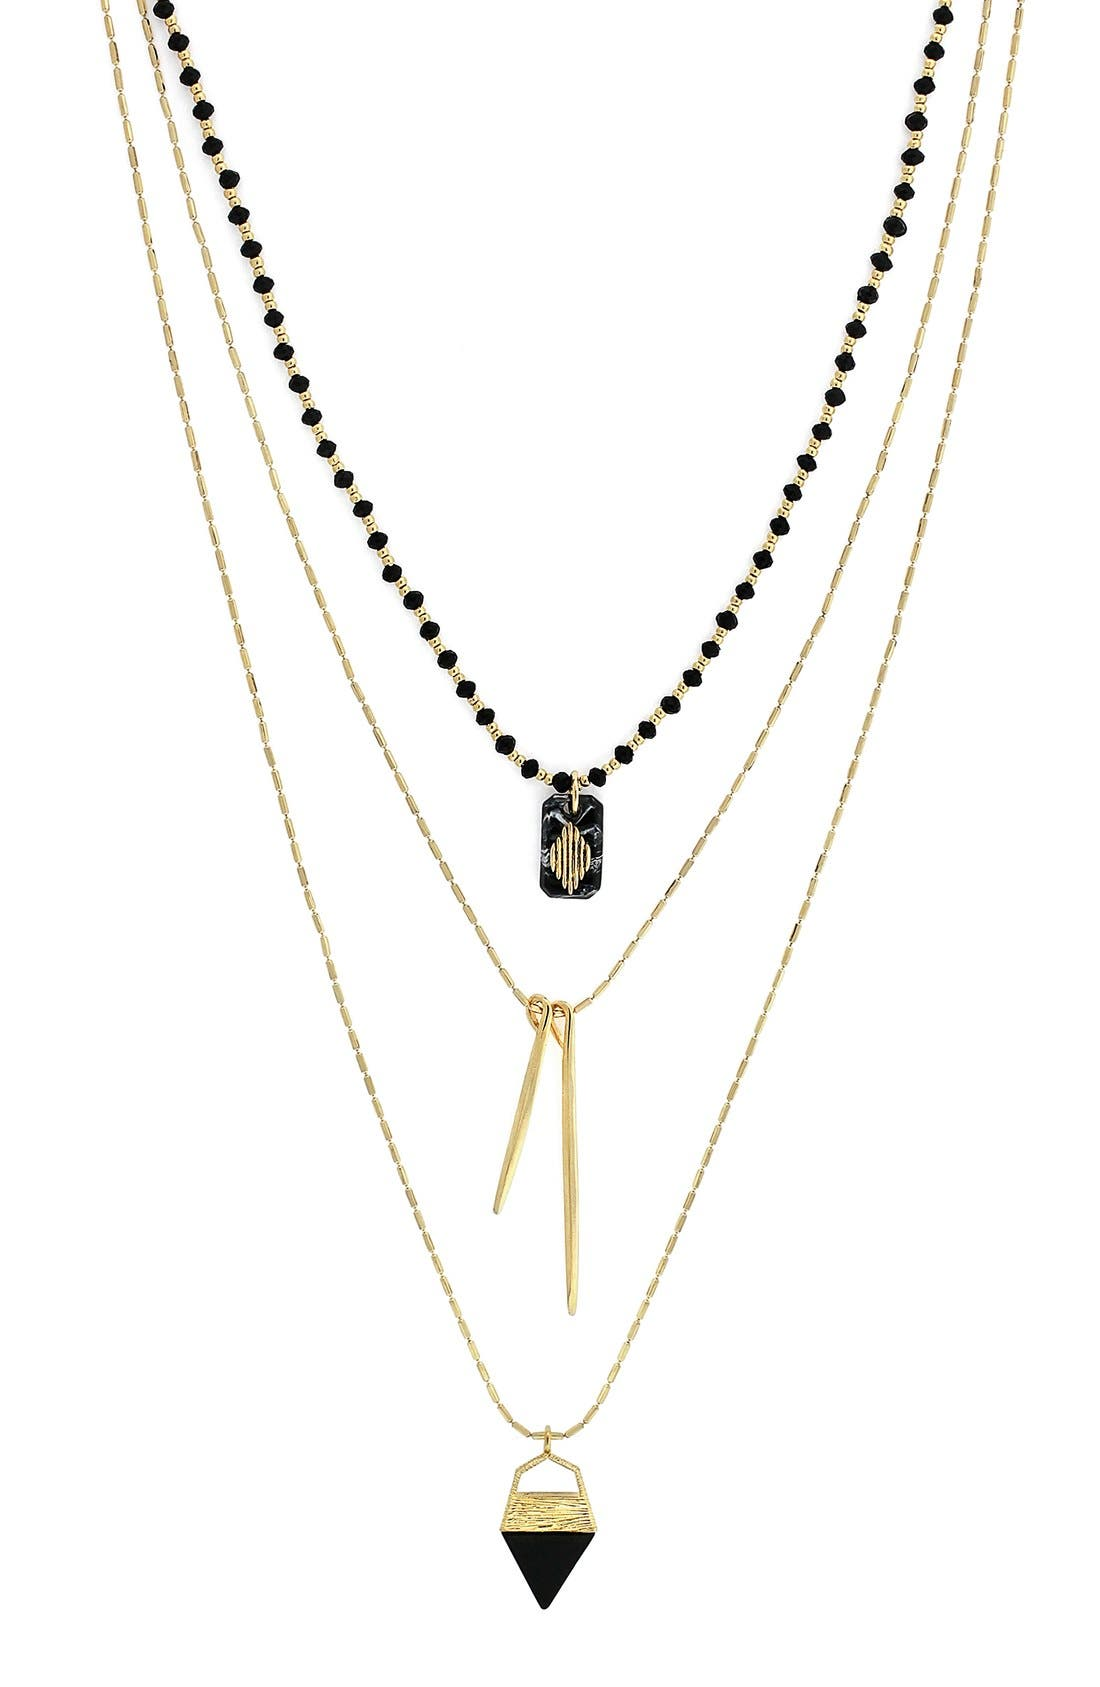 Main Image - Vince Camuto 'Serengeti Breeze' Triple Strand Necklace